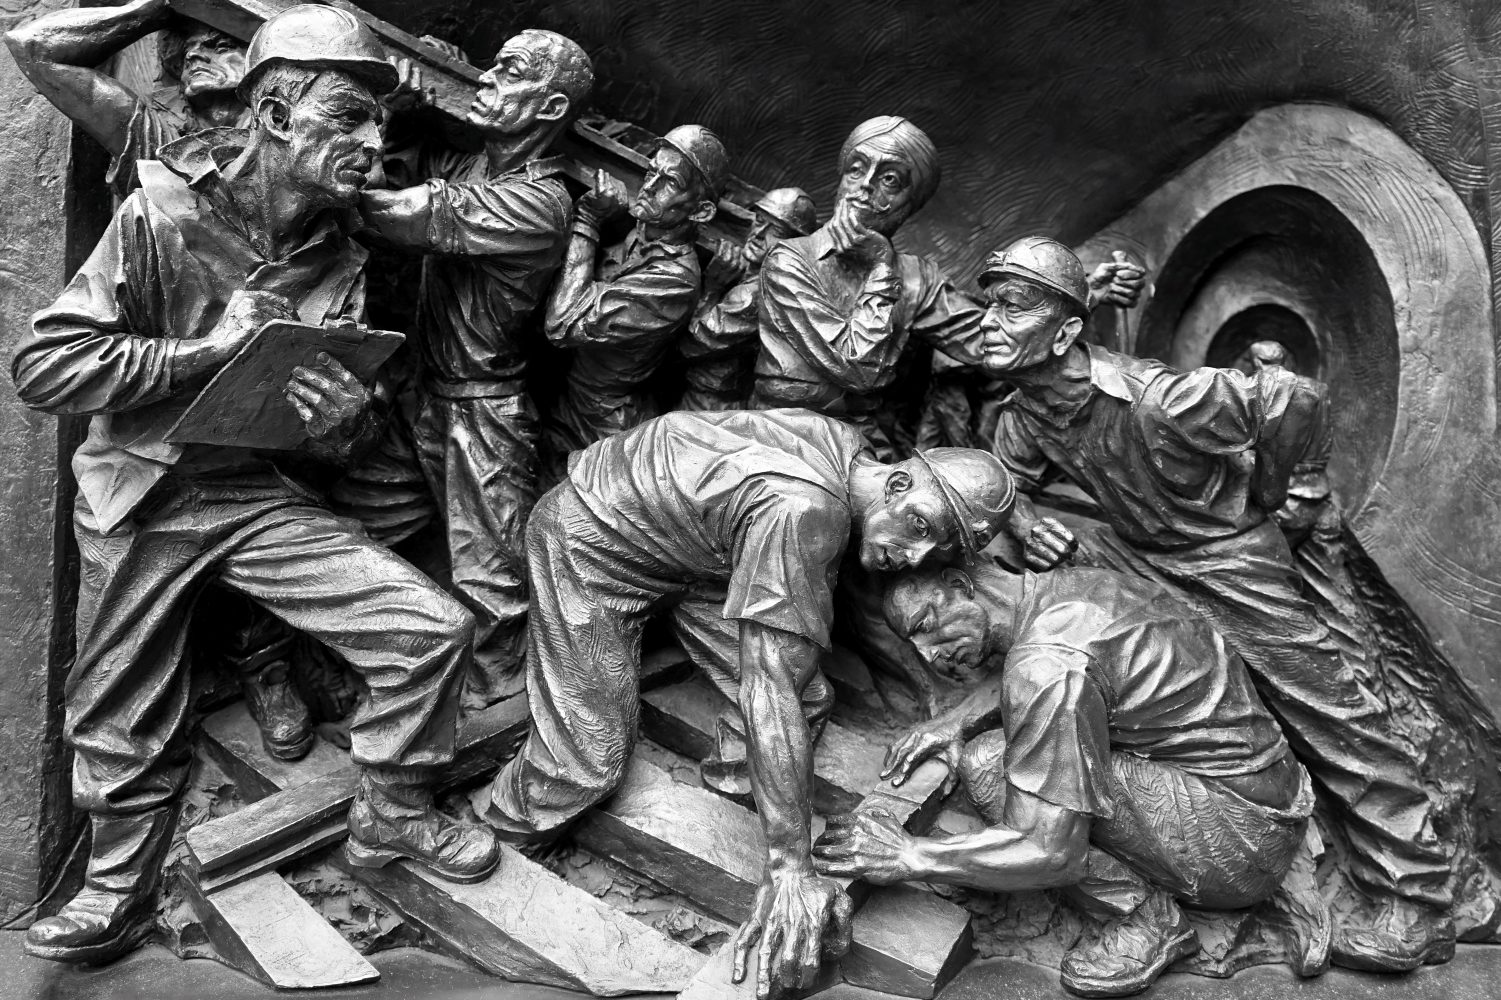 Scuplture of miners, hard at work. Cramped. Struggling.